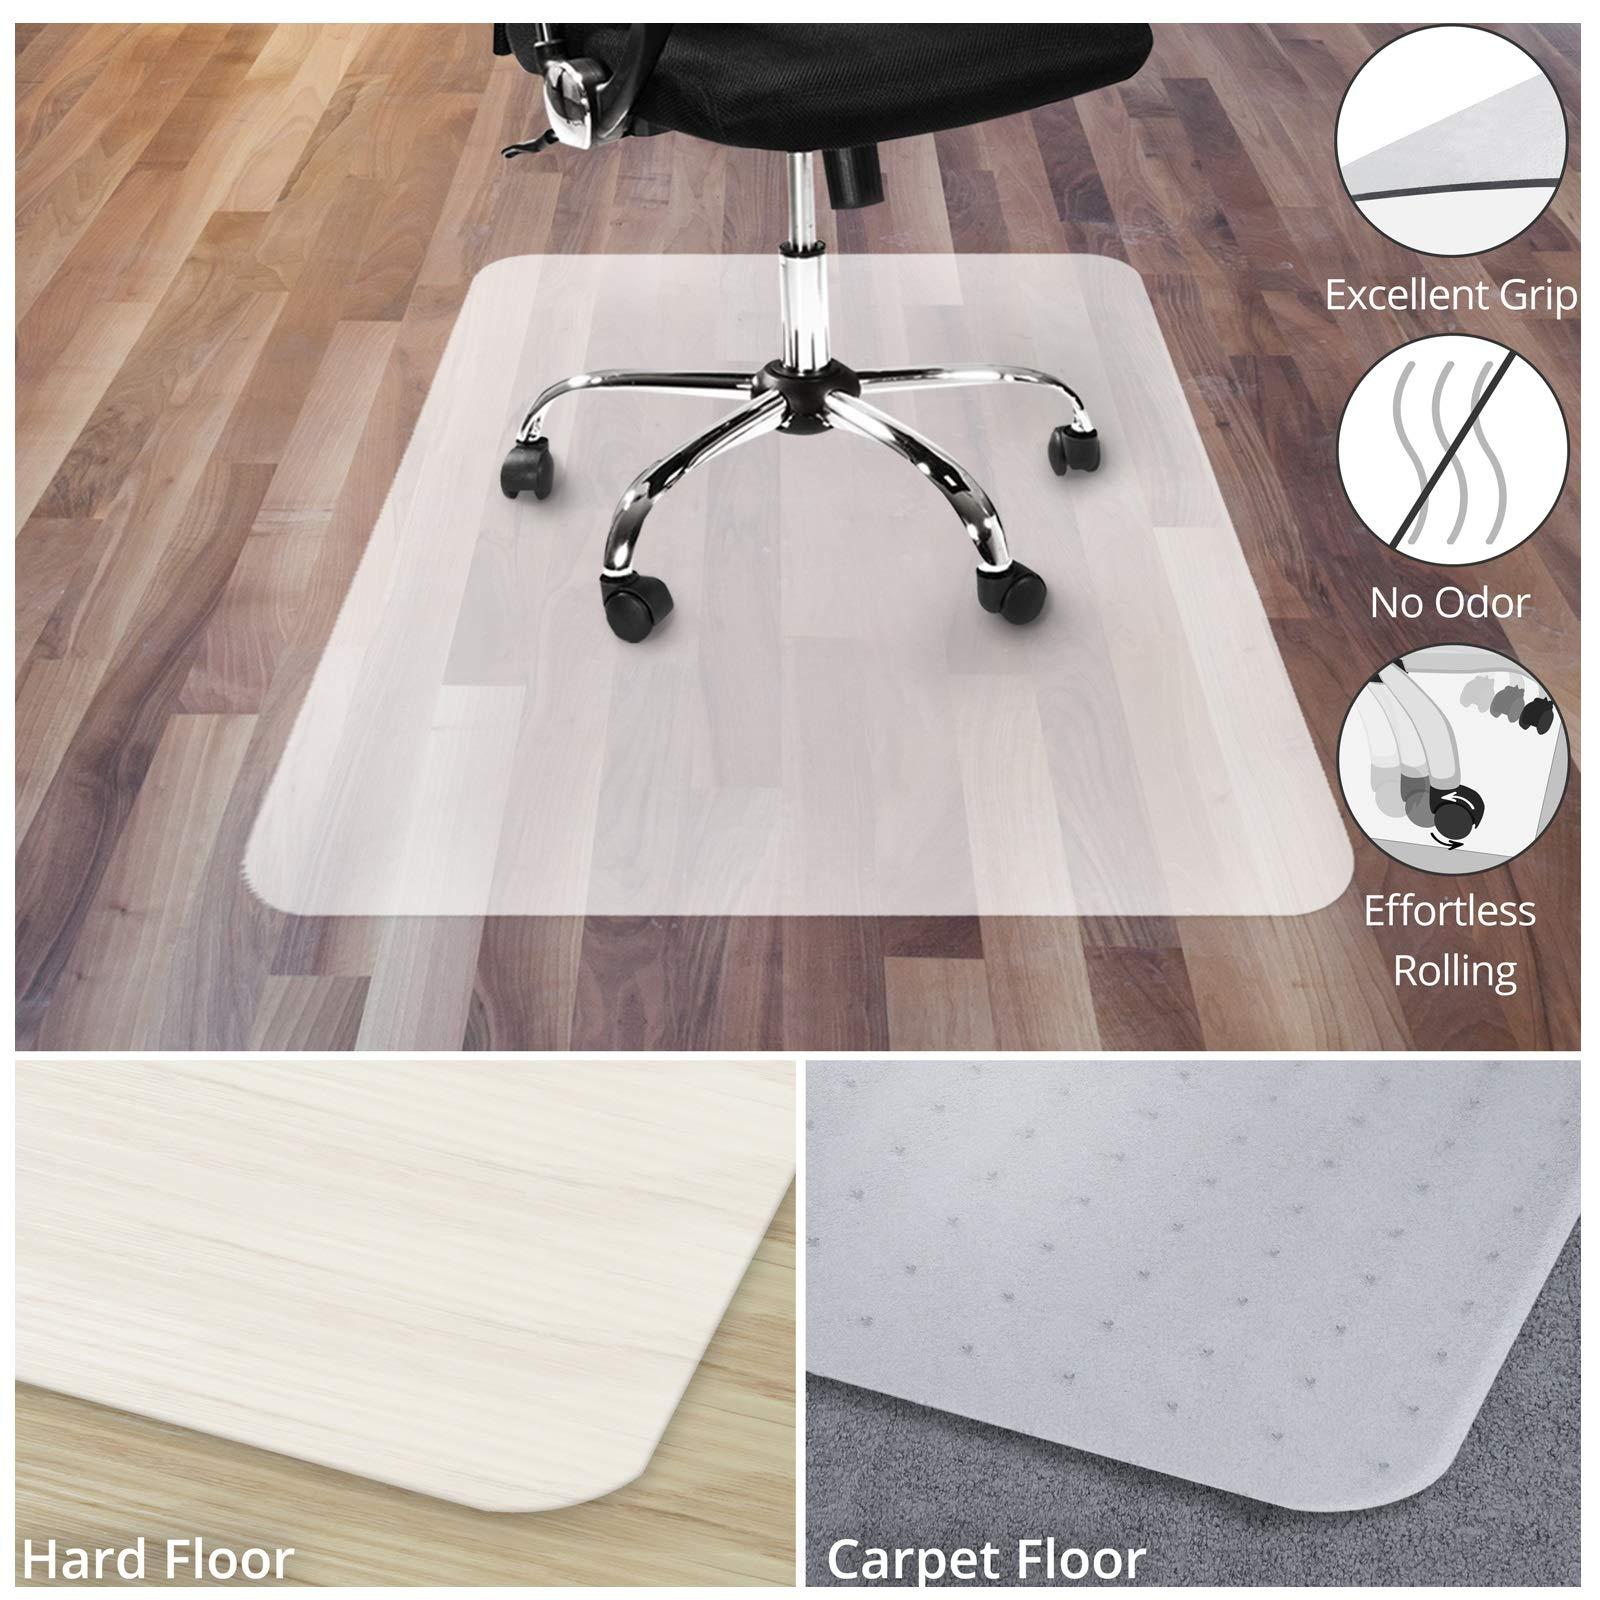 Office Chair Mat for Hardwood Floor | Opaque Office Floor Mat | BPA, Phthalate and Odor Free | Multiple Sizes Available- 30'' x 48'' by OfficeMarshal